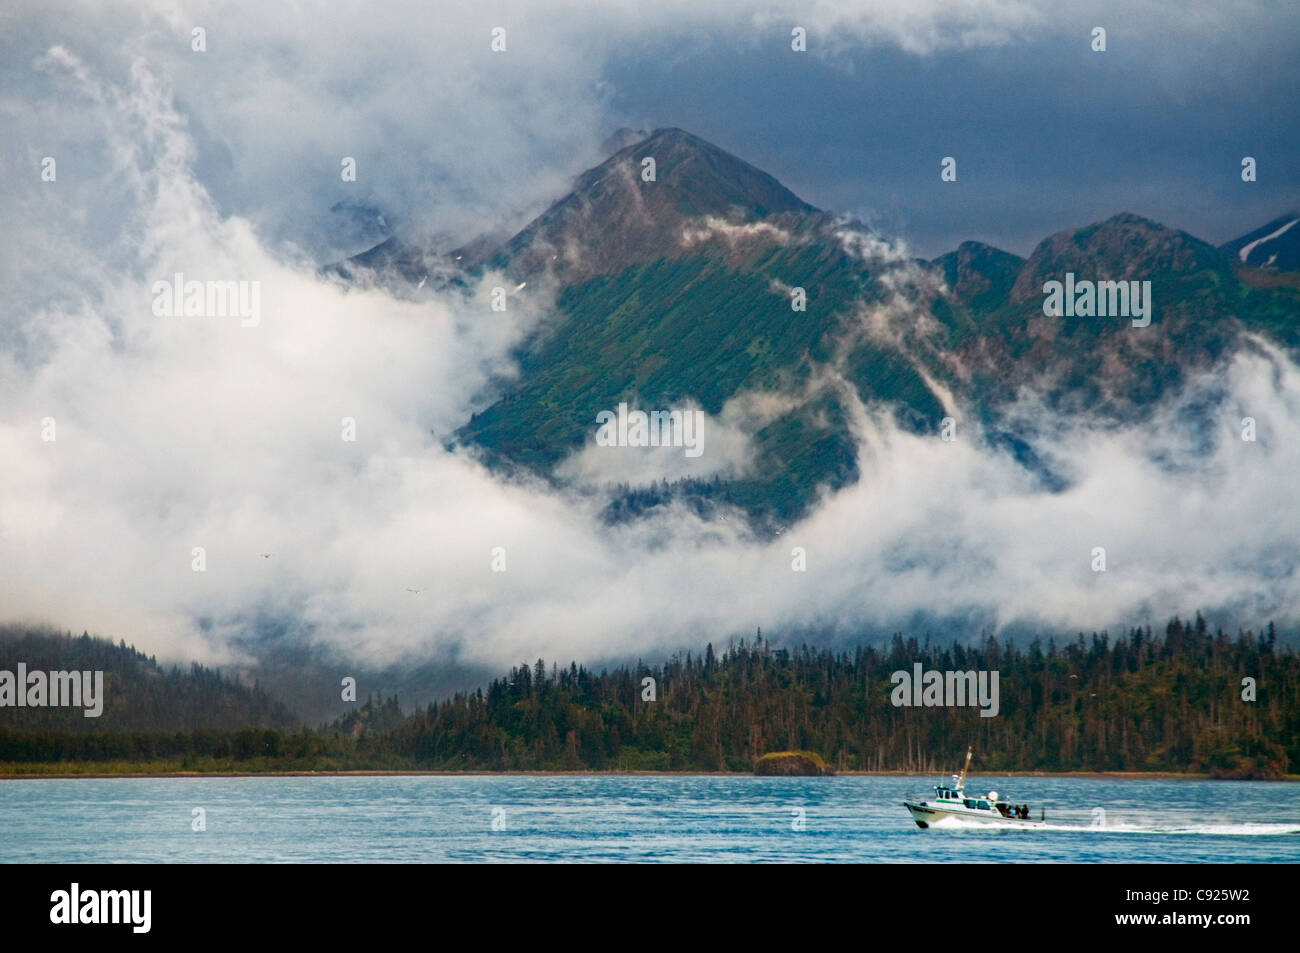 Sport fishing charter boat in Kachemak Bay with the fog enshrouded Kenai Mountains in the background, Alaska - Stock Image